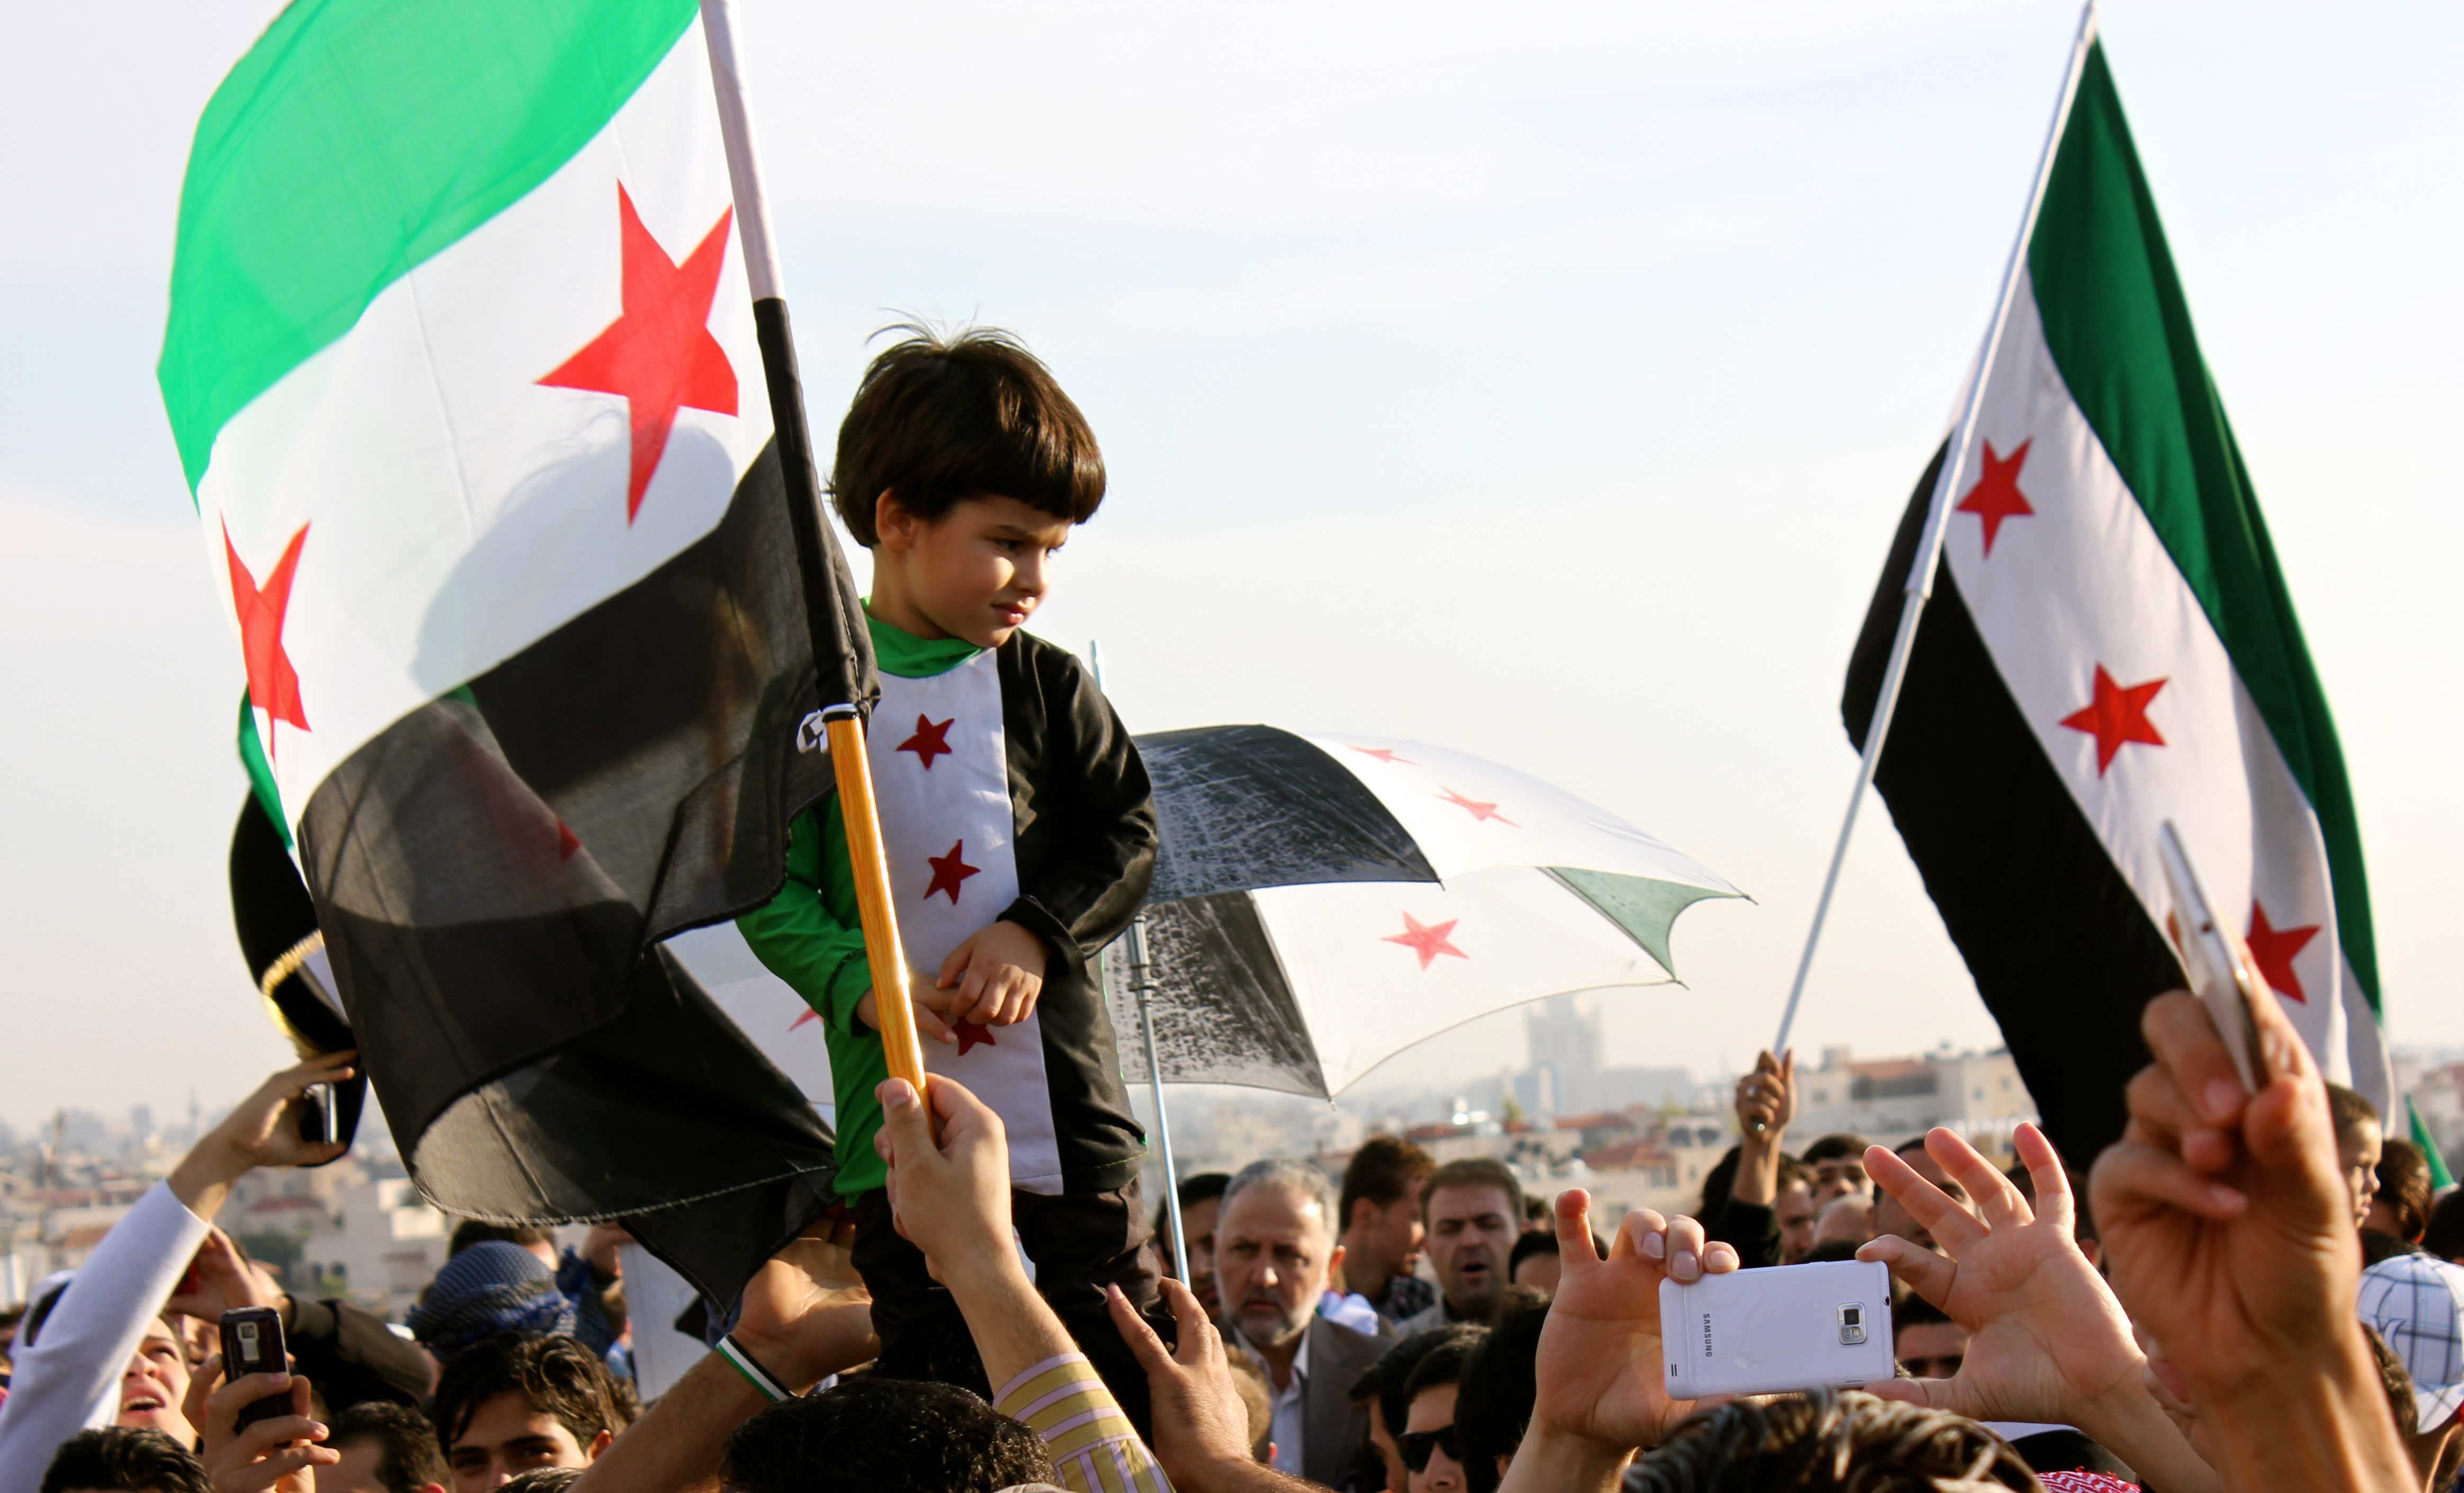 The Syrian Revolution: Transformations and End game Scenarios